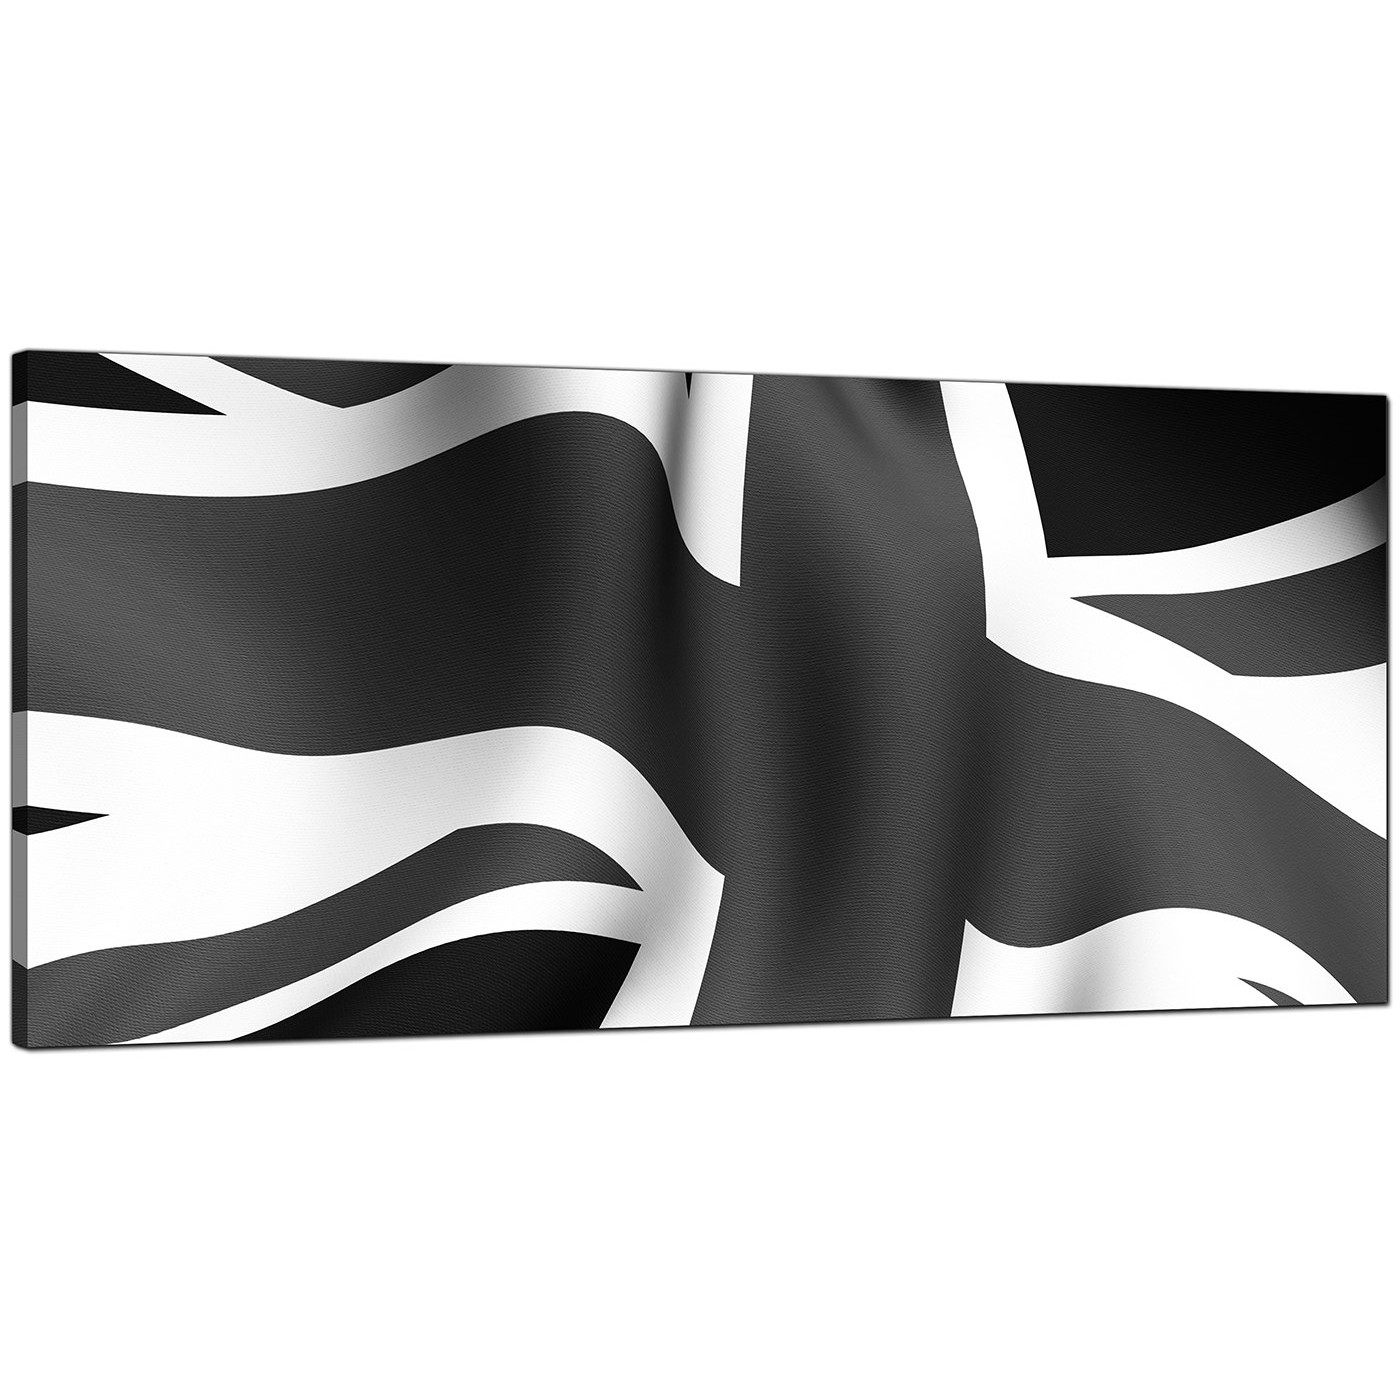 Display gallery item 4 · black white cheap panoramic canvas of union jack flag display gallery item 5